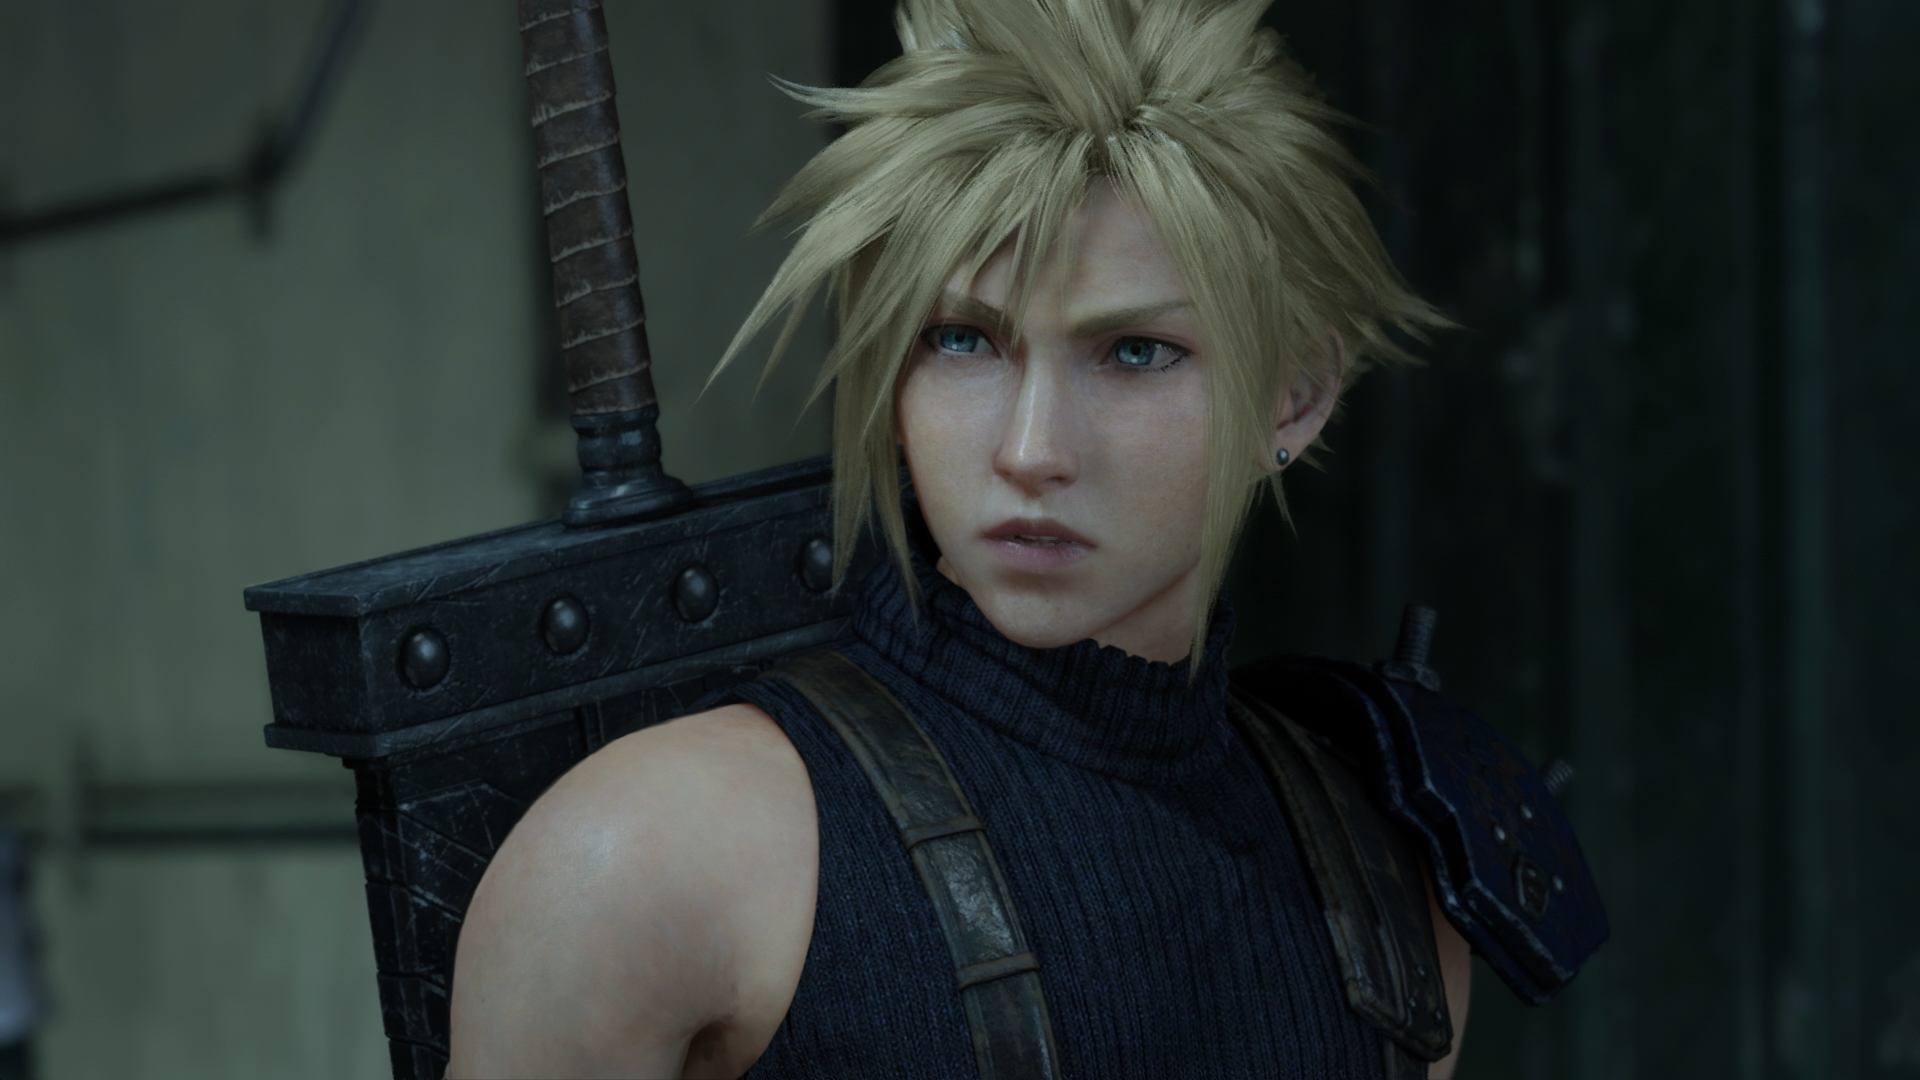 Final Fantasy 7 Remake Part 2 already in development, Square Enix ...